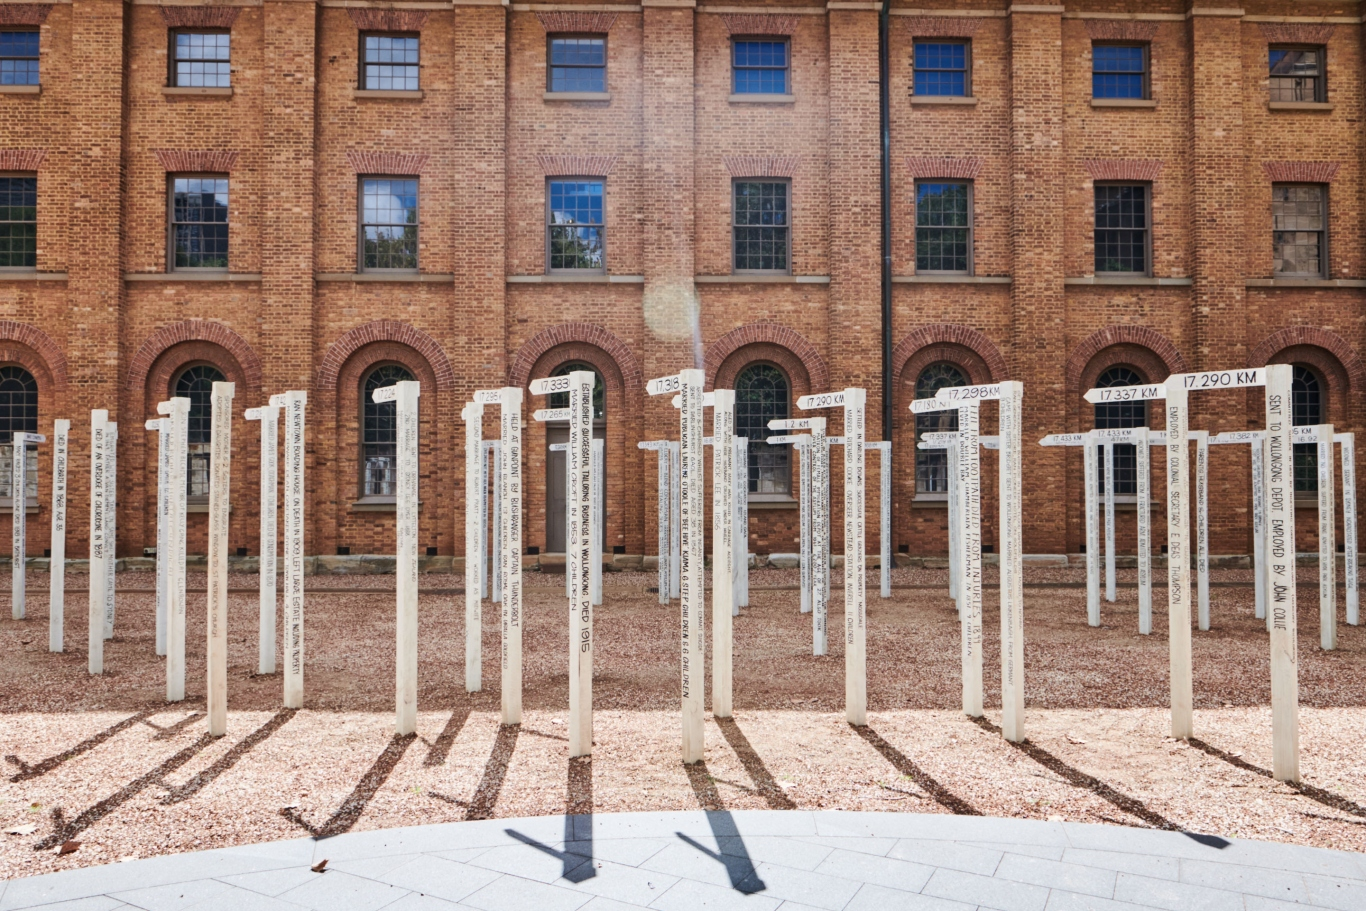 Who goes here? installation by artist Fiona Hall.